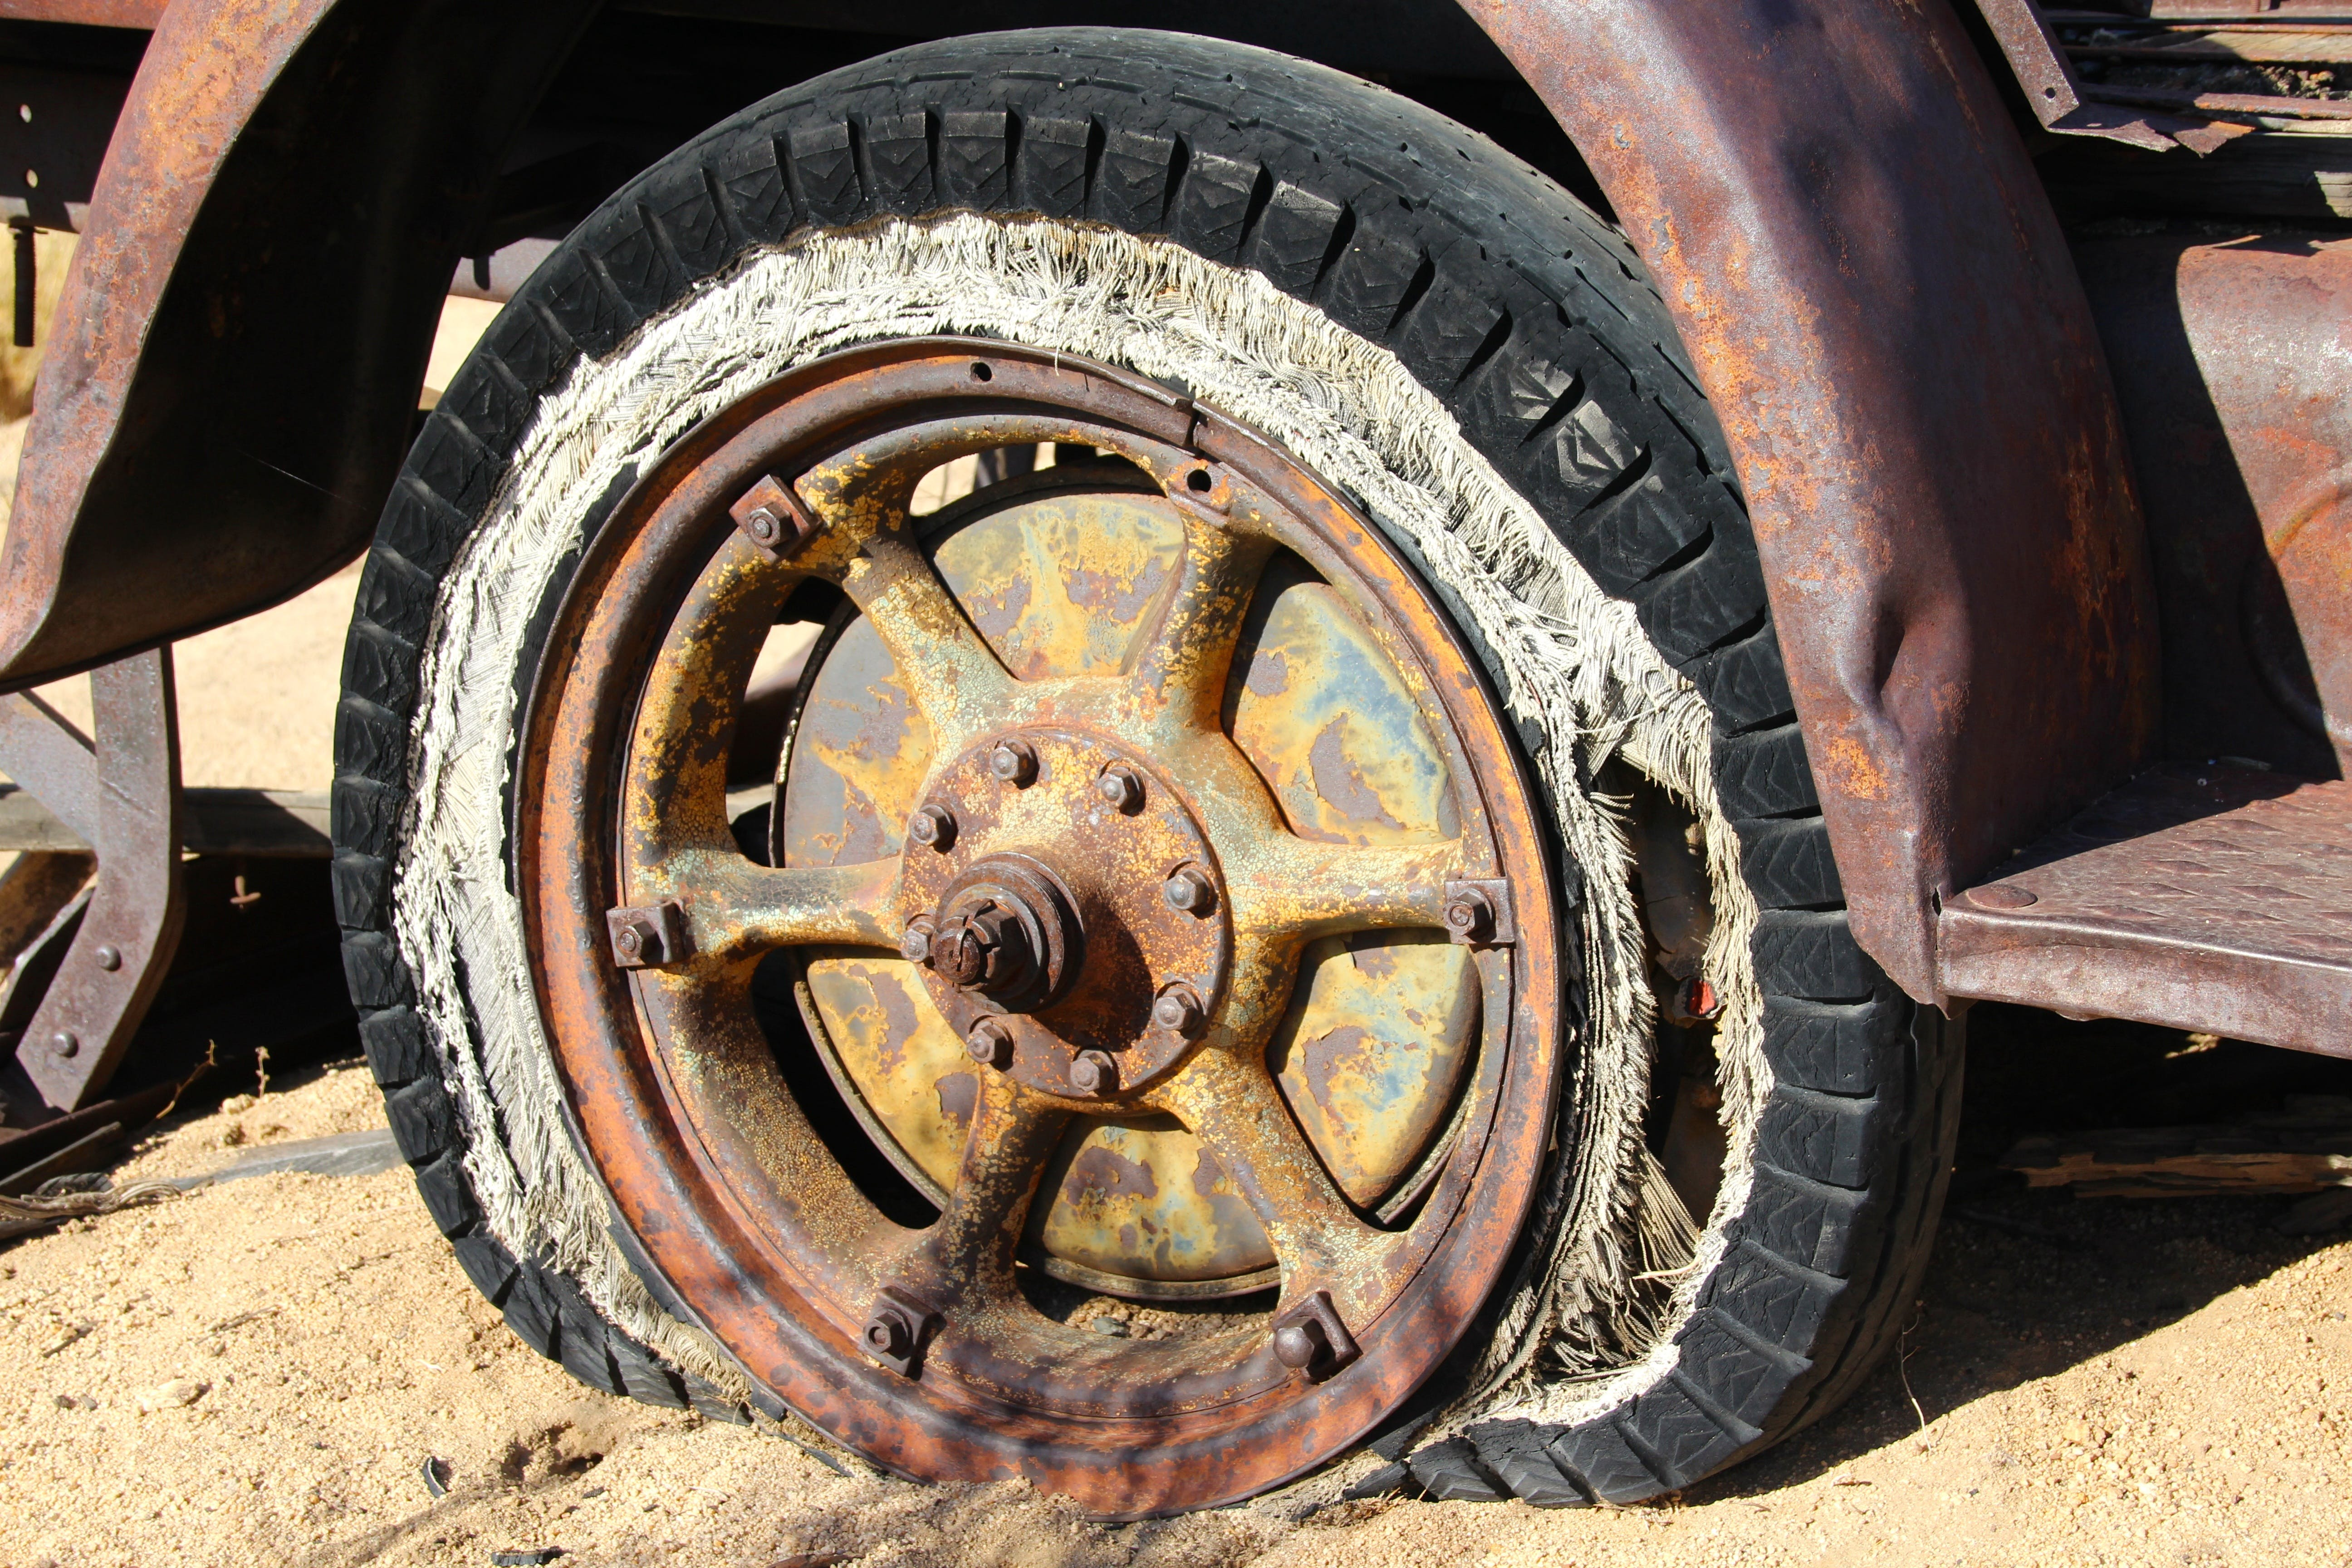 Brown Spoke Car Wheel in Brown Sand during Daytime